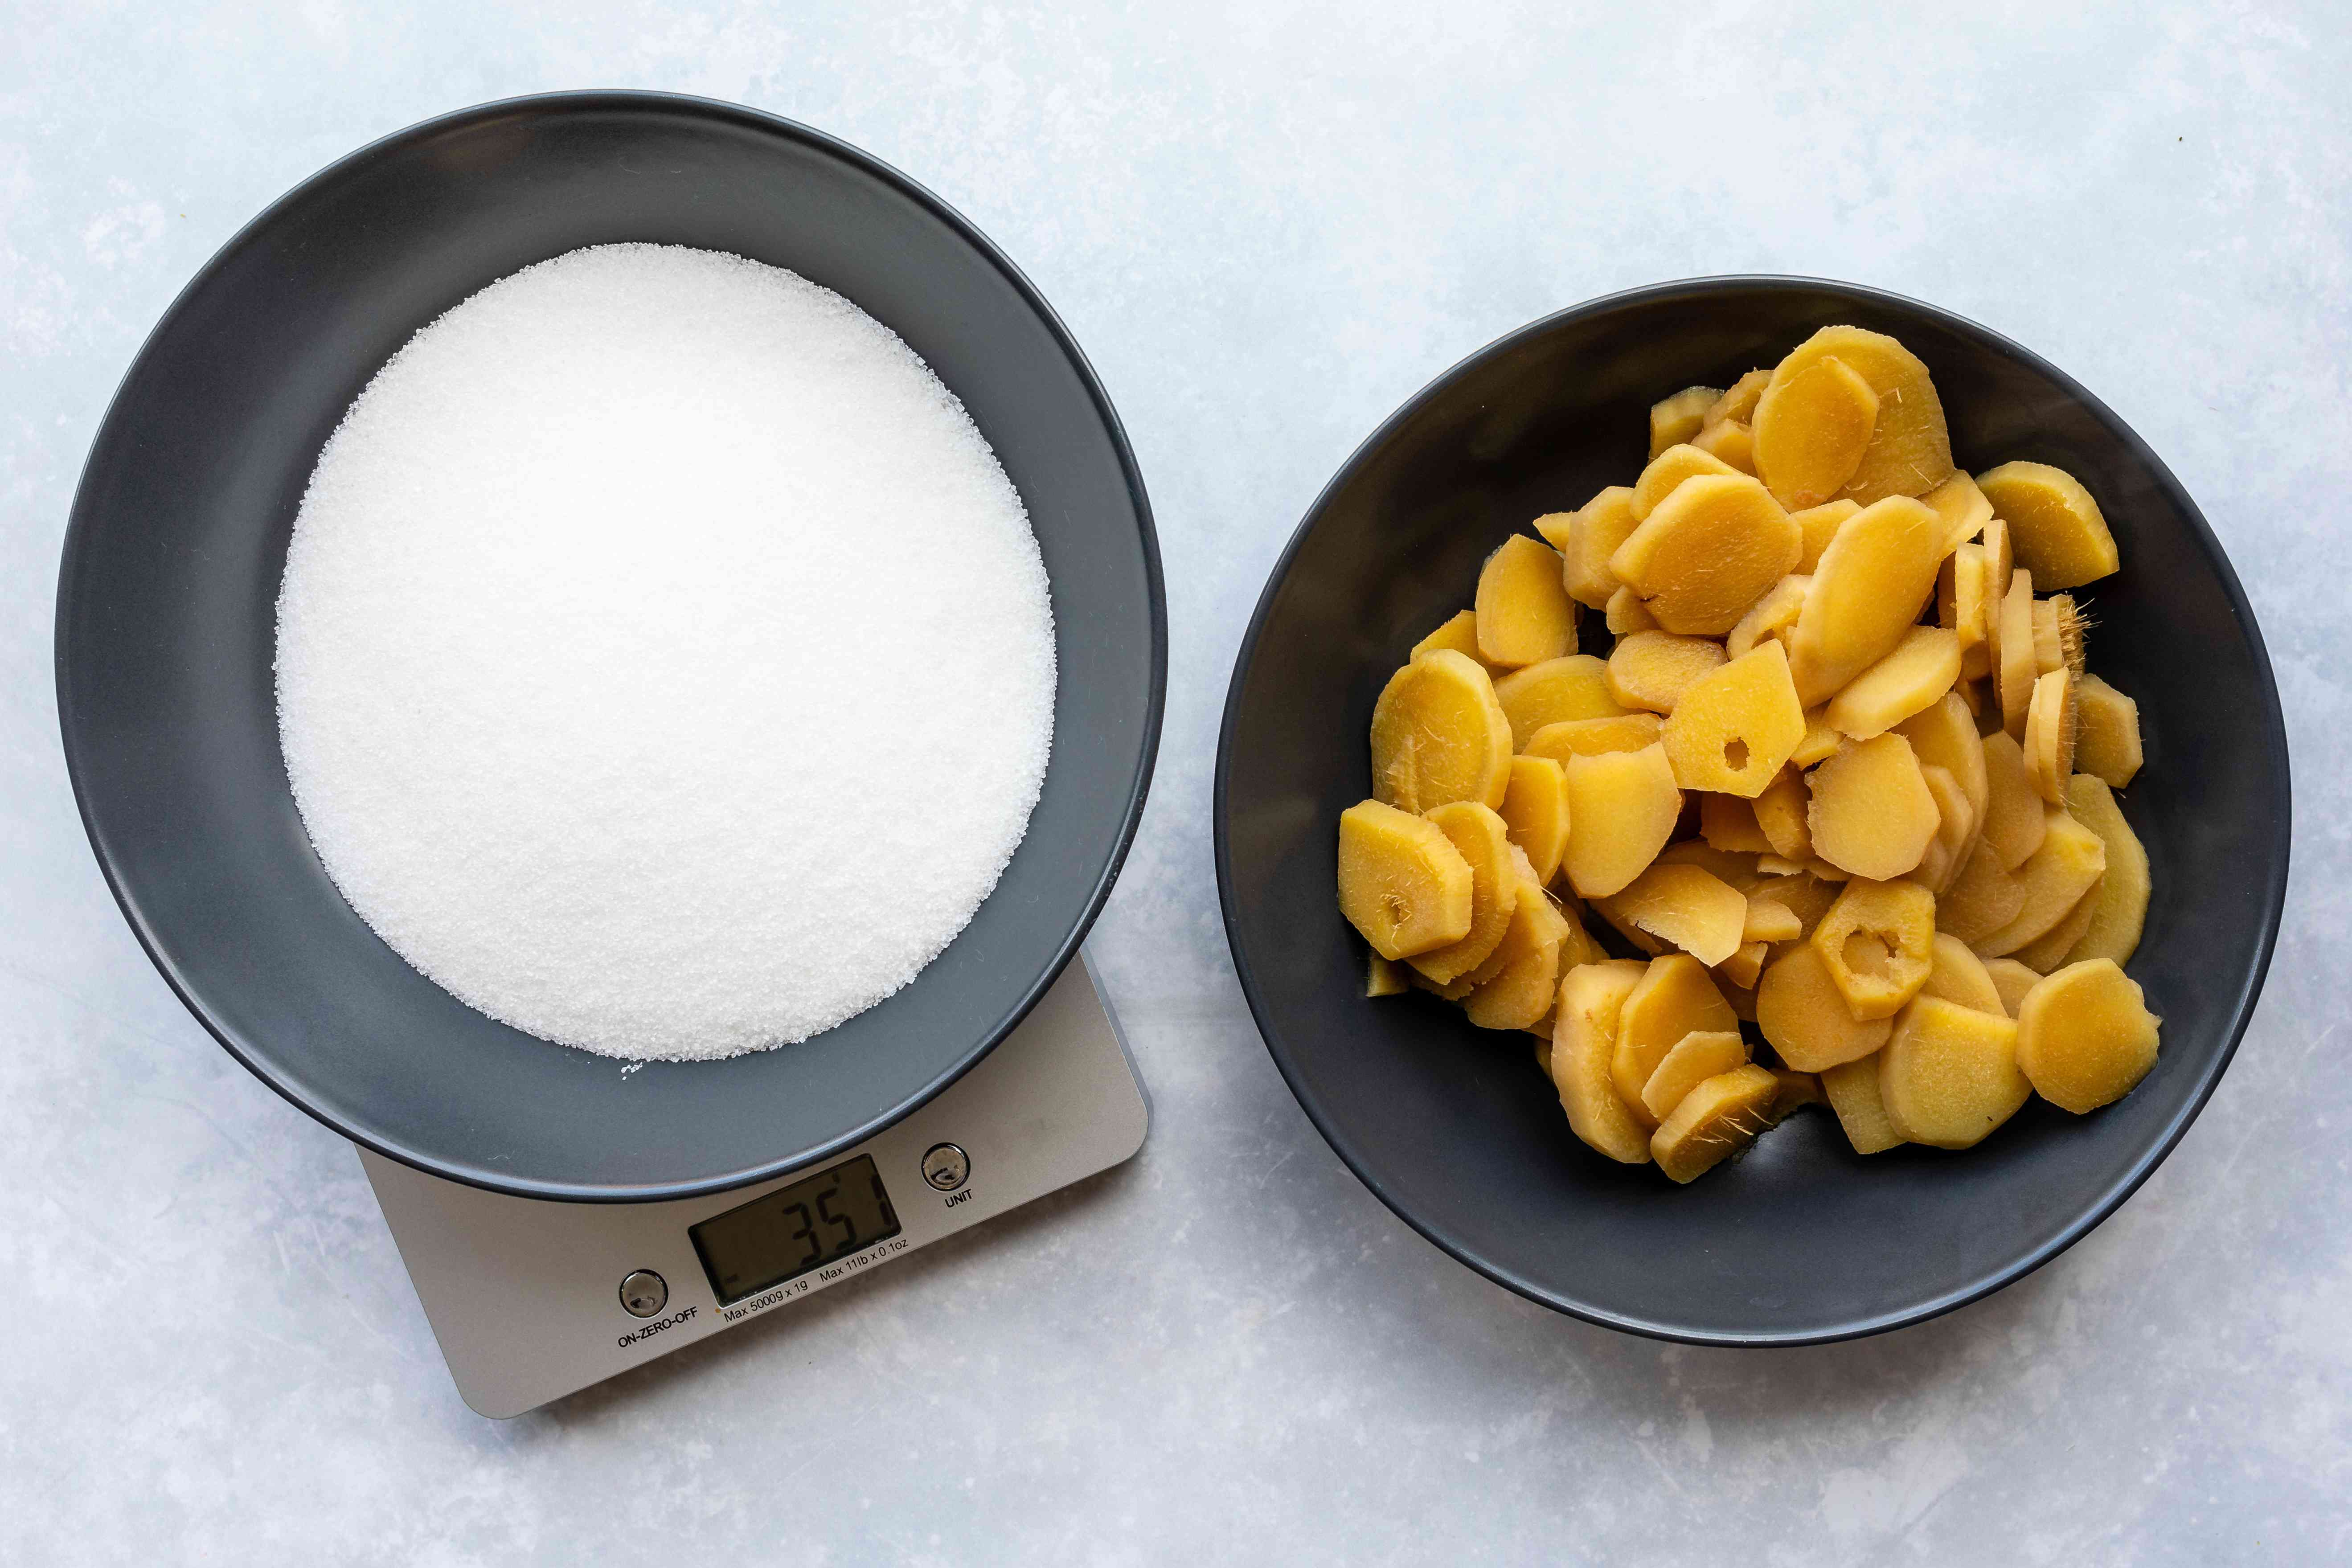 Weigh cooked ginger